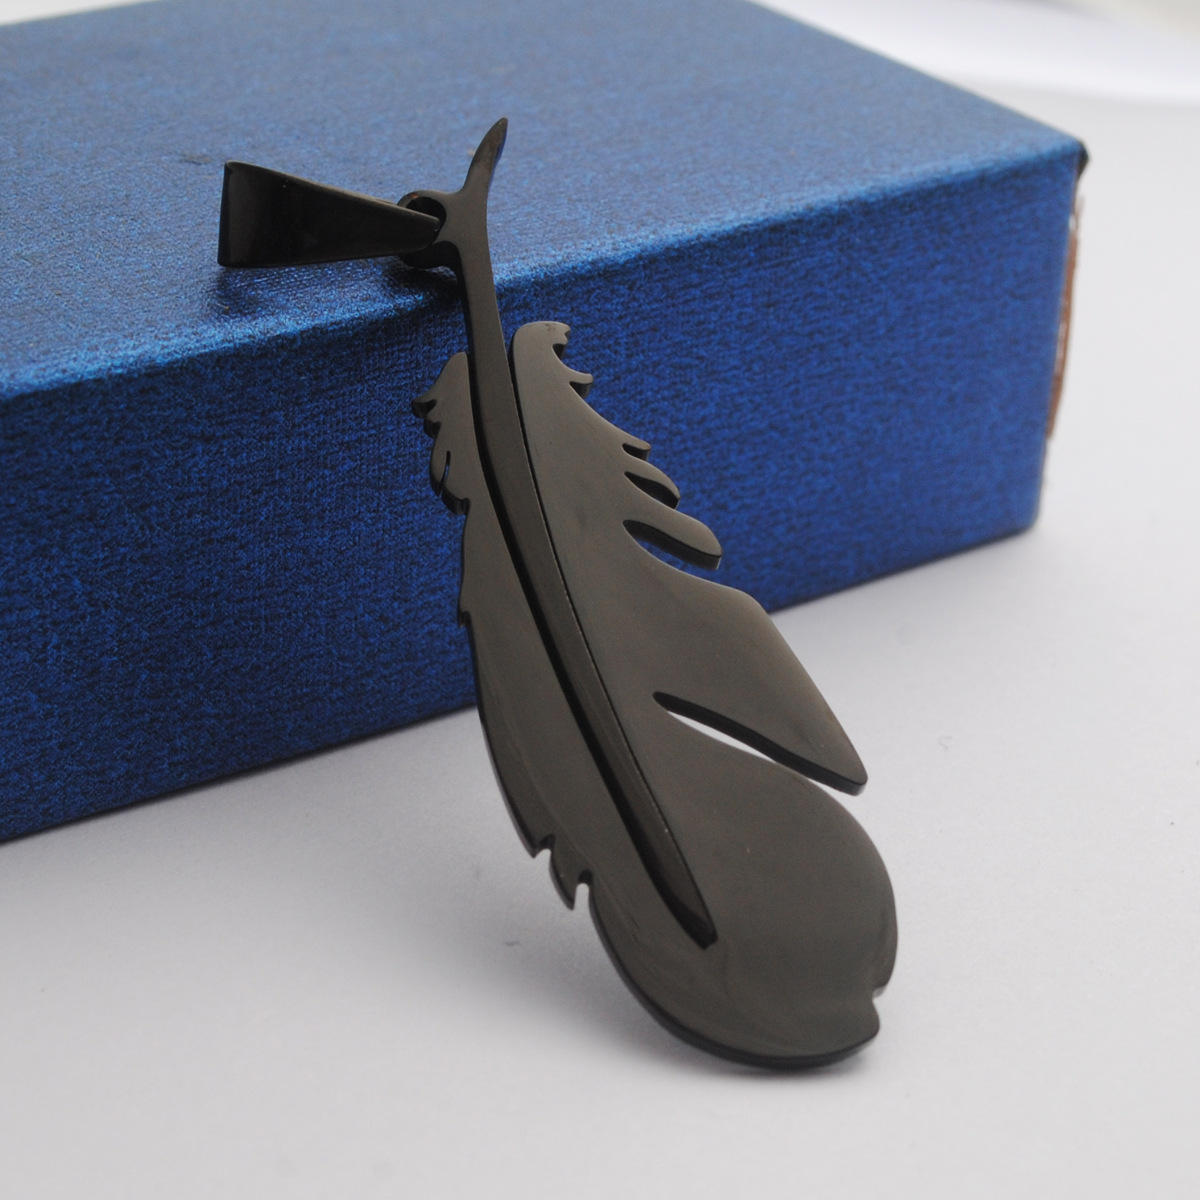 2021 new Stainless steel fashion retro men and women necklace minimalist feather pendant